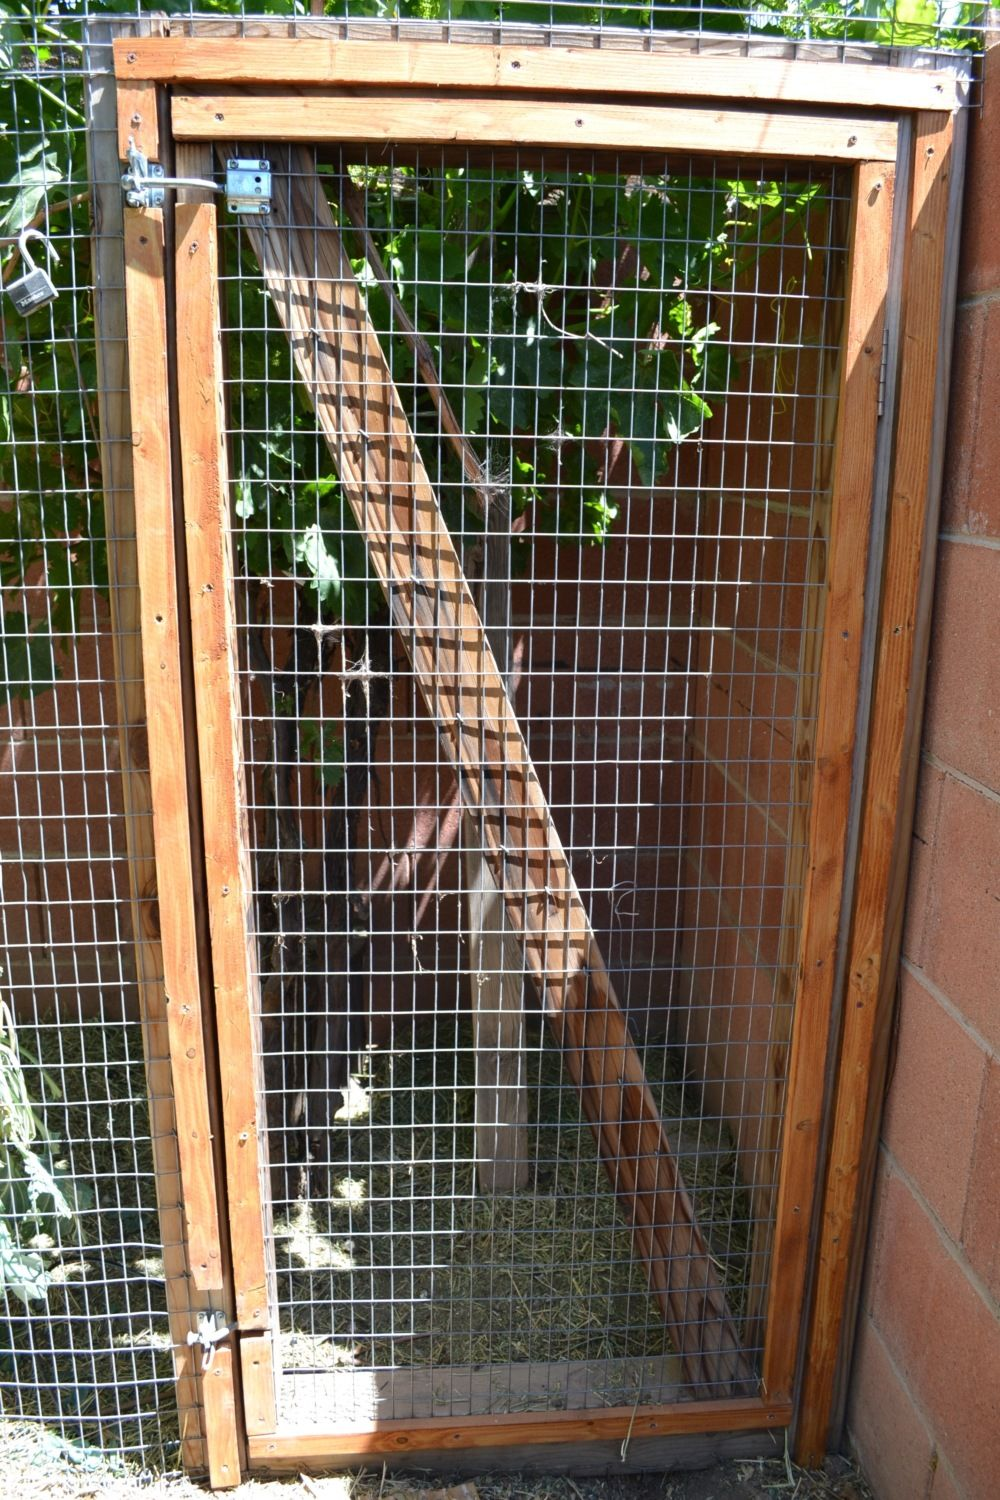 Gallo Del Cielos Chicken Coop Backyard Chickens Wwwbackyardchickenscom Forum Uploads 33115eggpartsdiagramgif I Would Point Out That All The Predator Proofing In World Wont Matter Much At If Door To Or Run Is Left Open